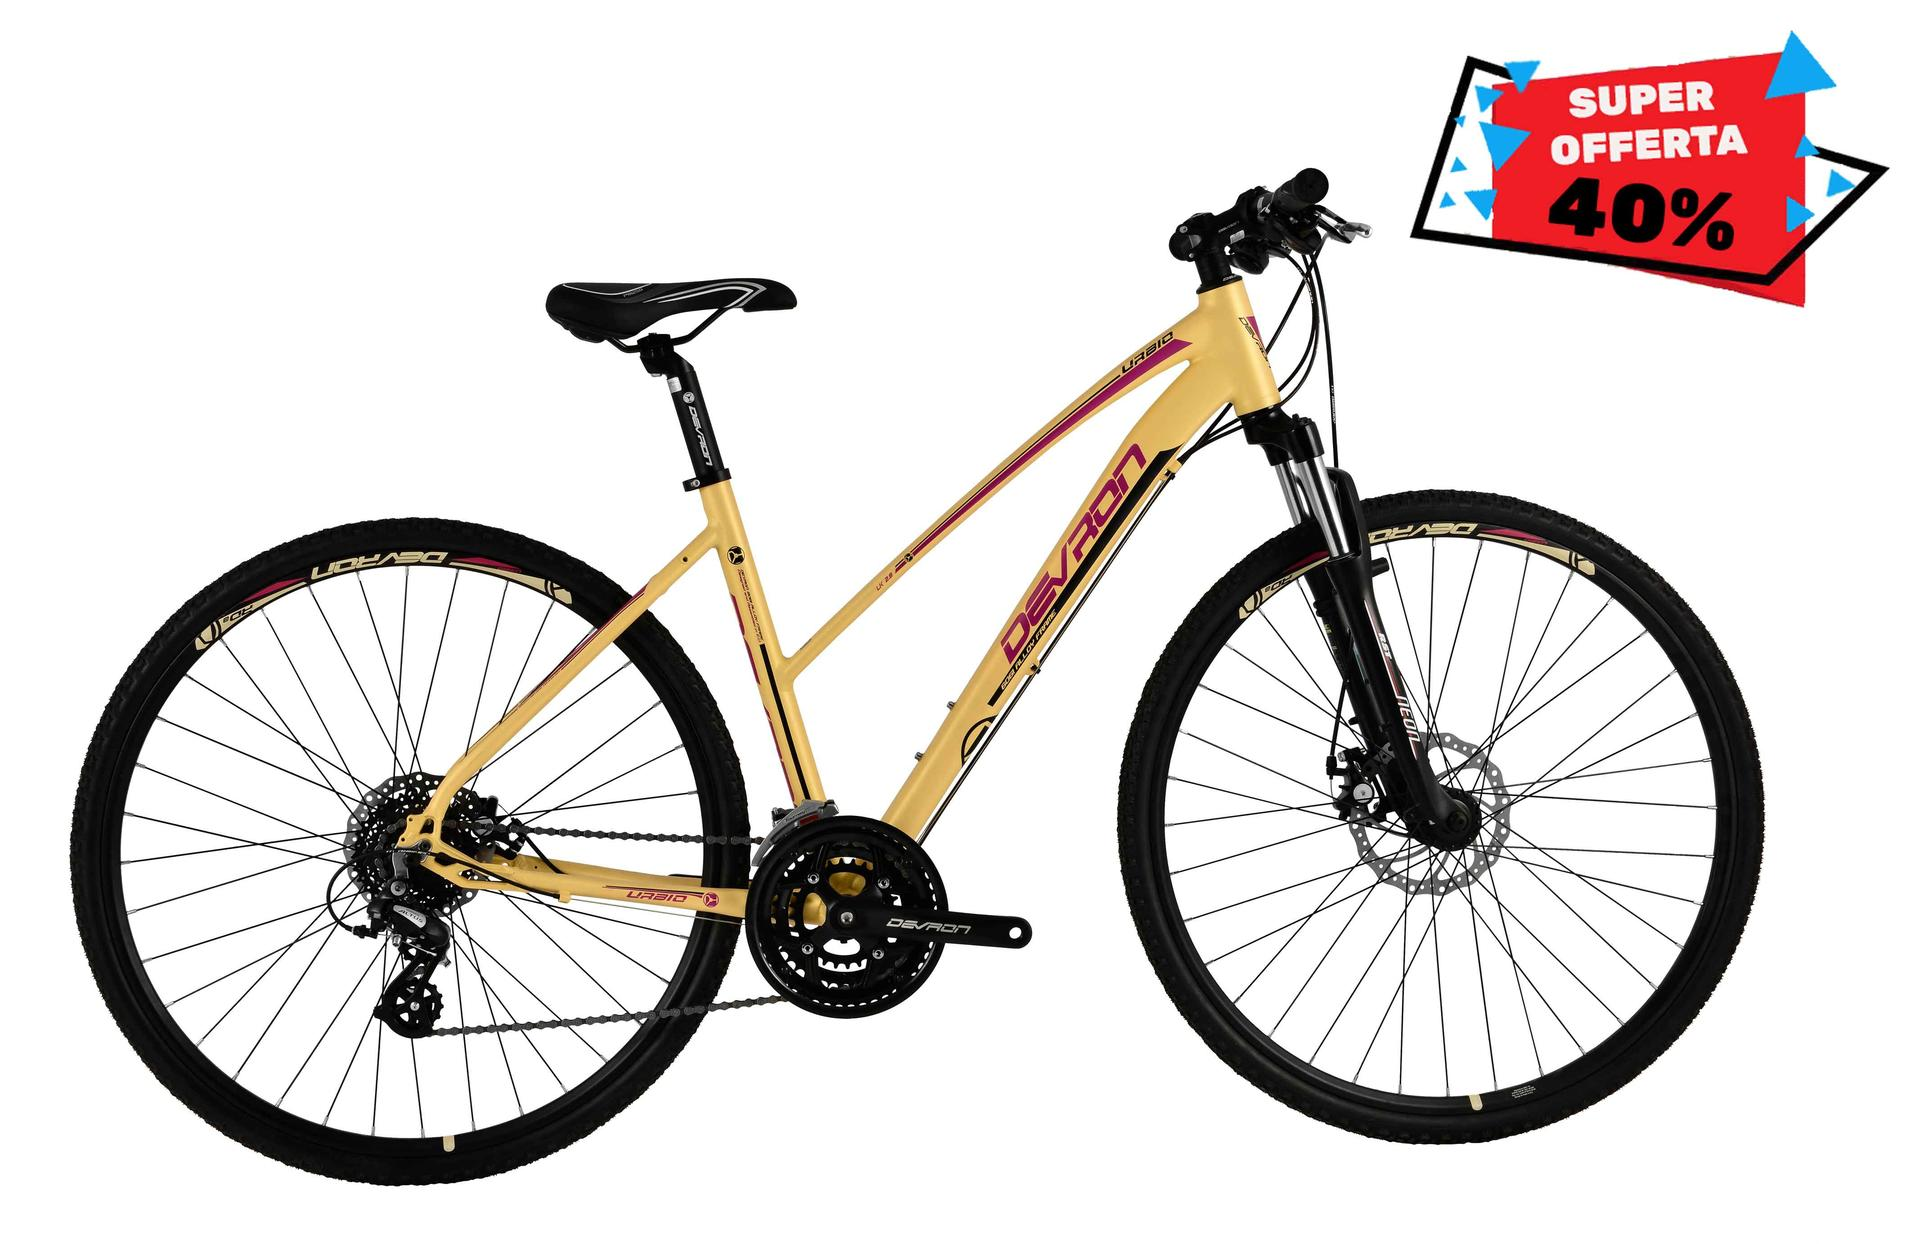 Bicicletta donna da cross Devron Lady U.Cros.LK2,8 Mandarin Dream 520 mm